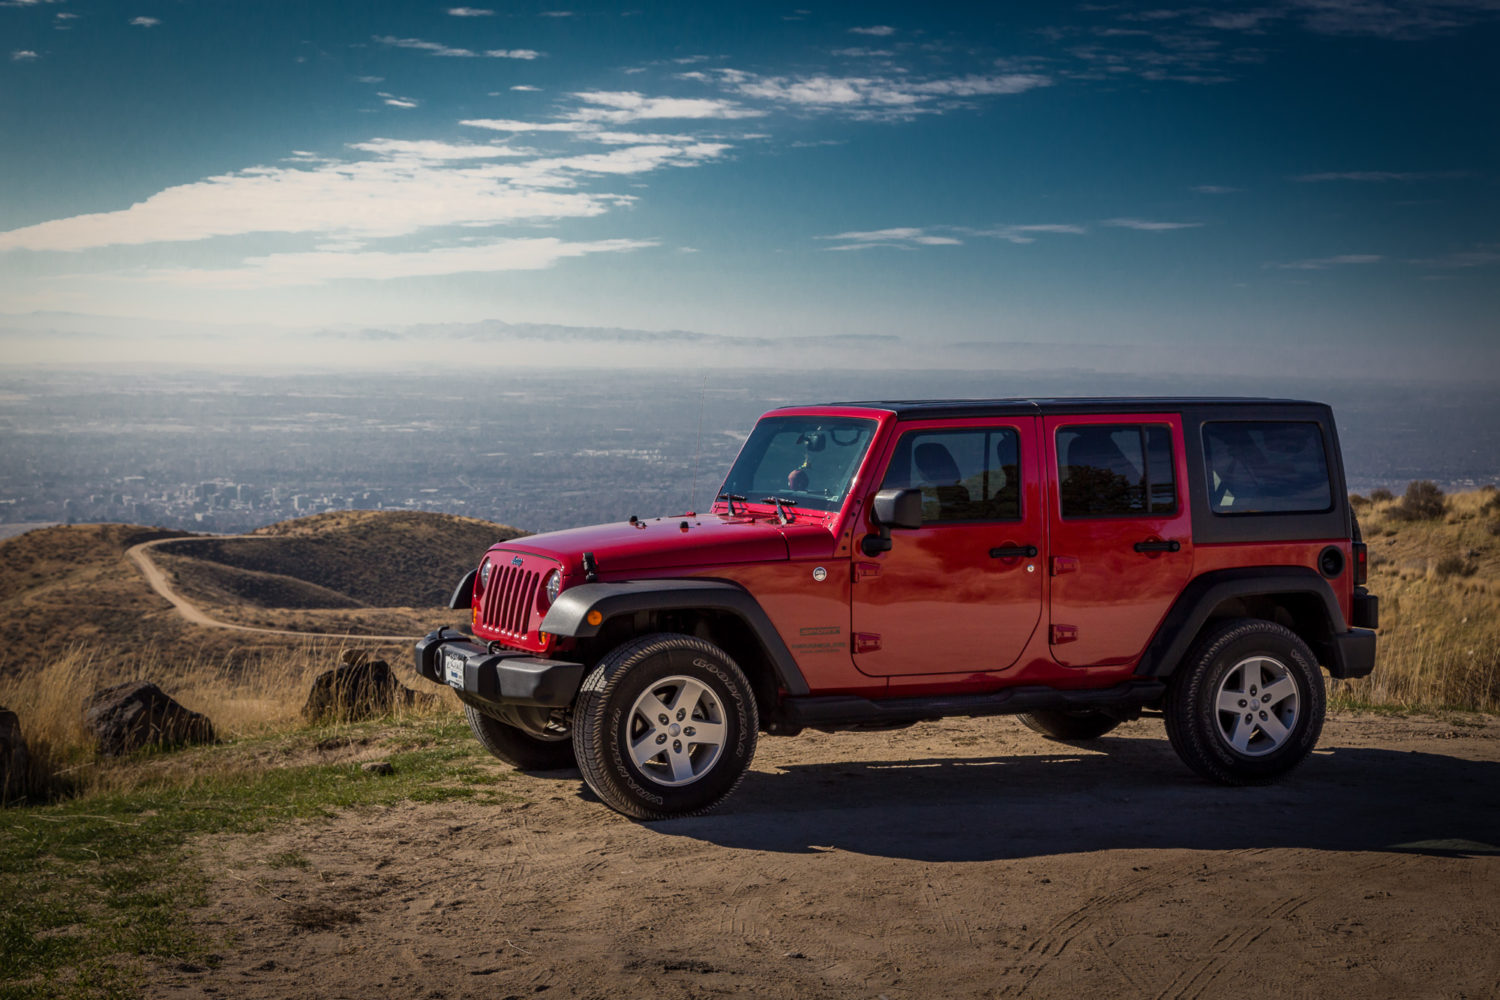 Jeep above Boise